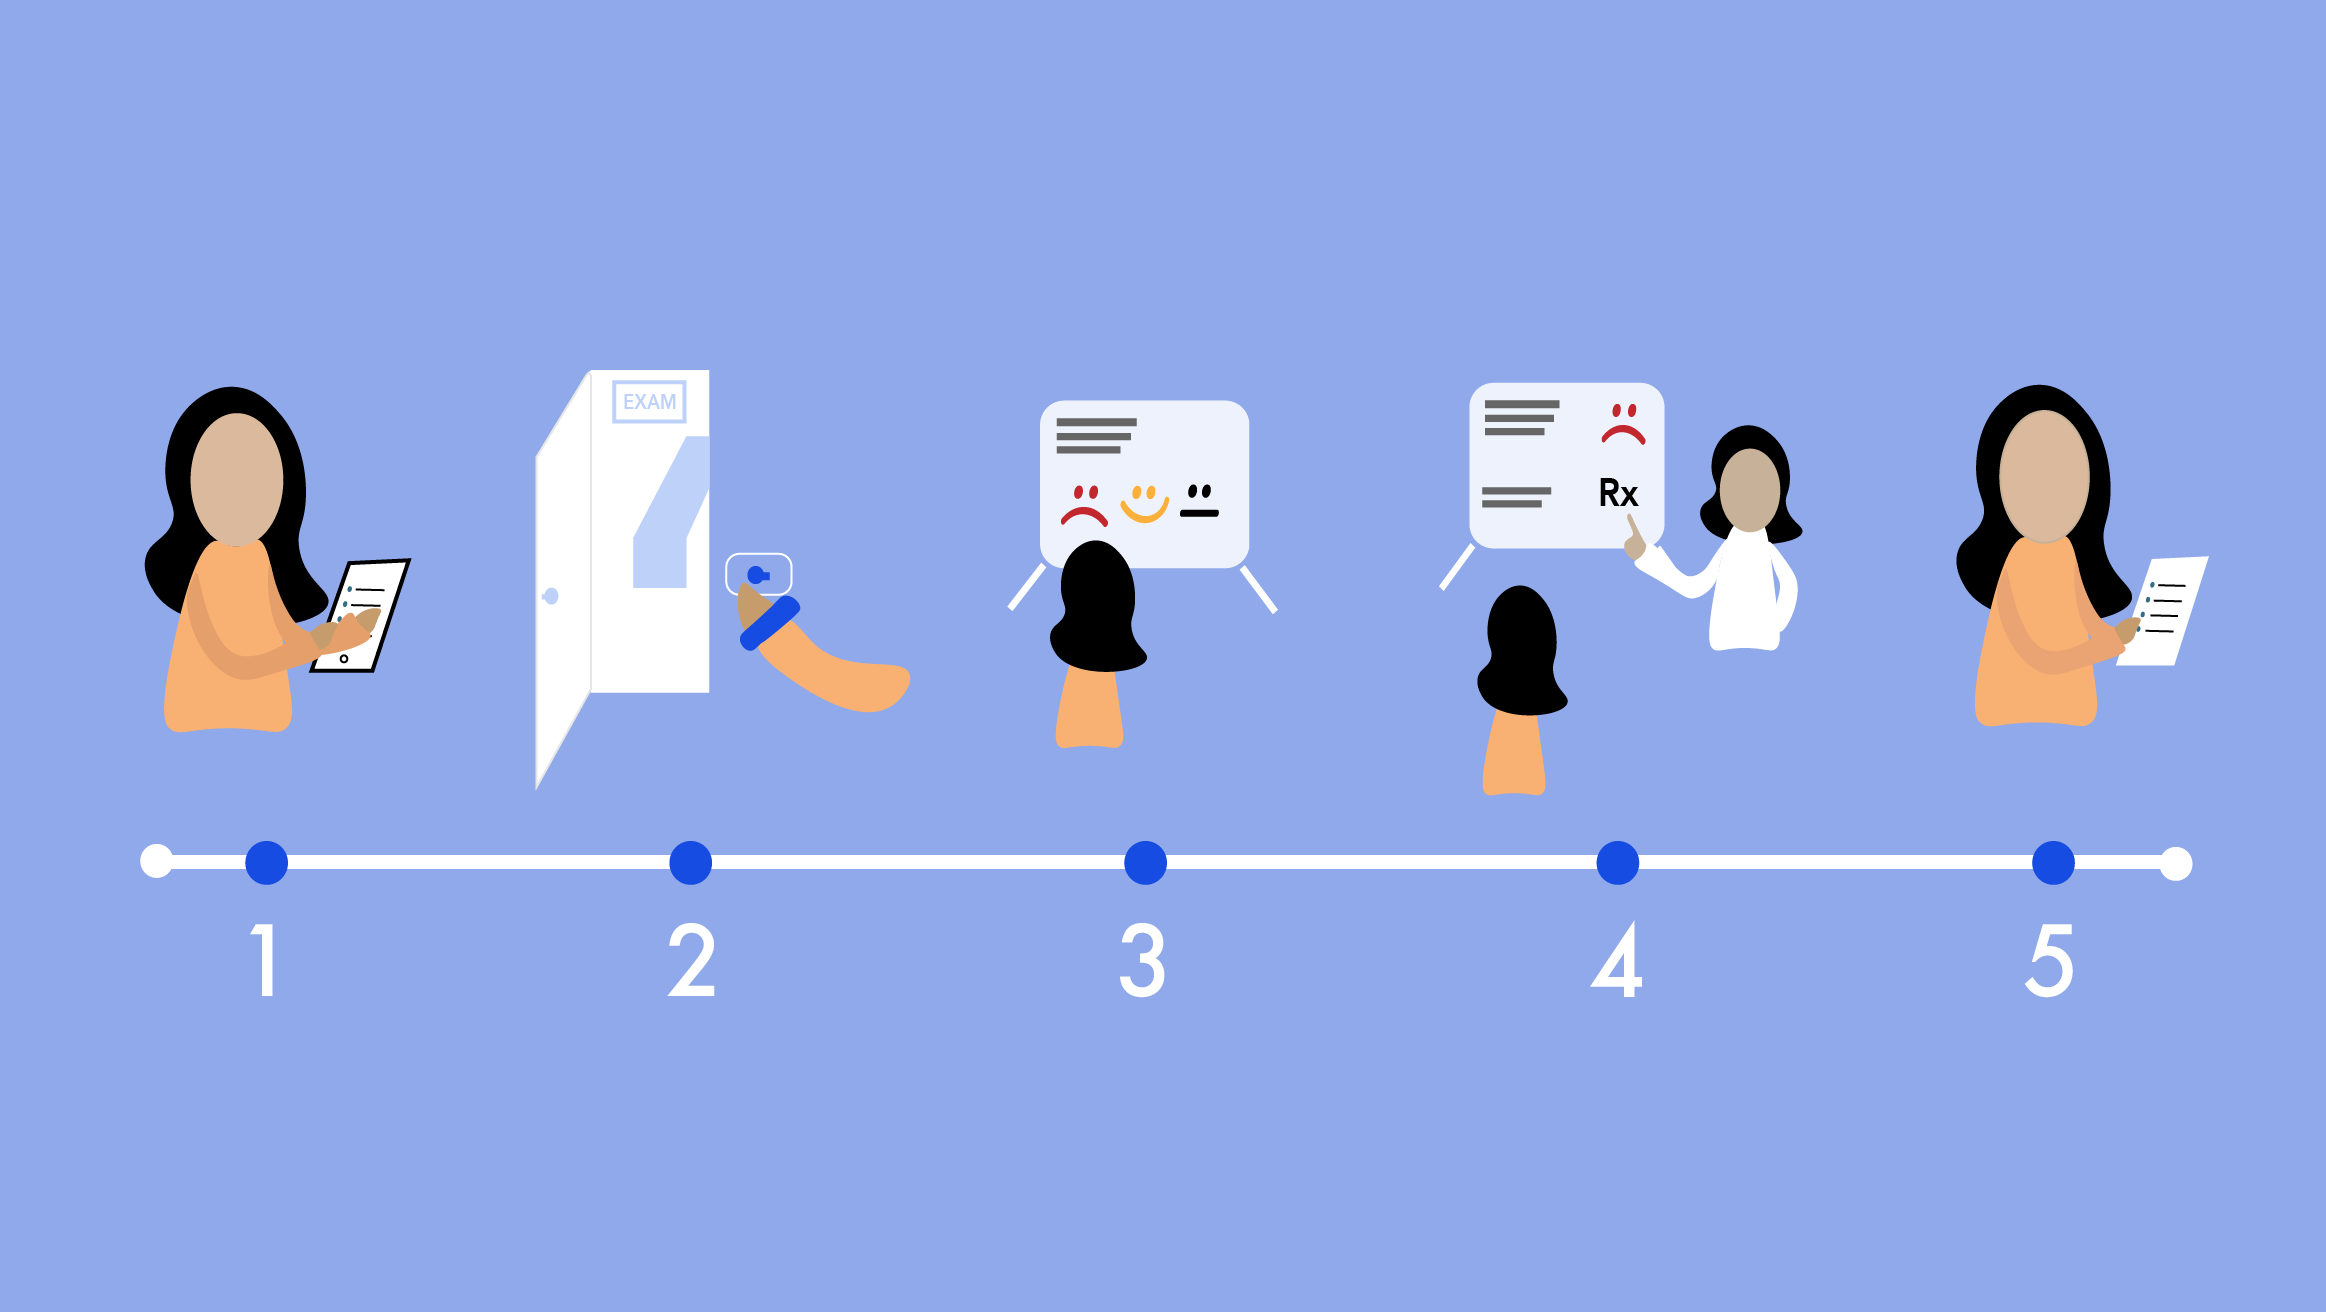 Illustrations depicting the Visualize Service